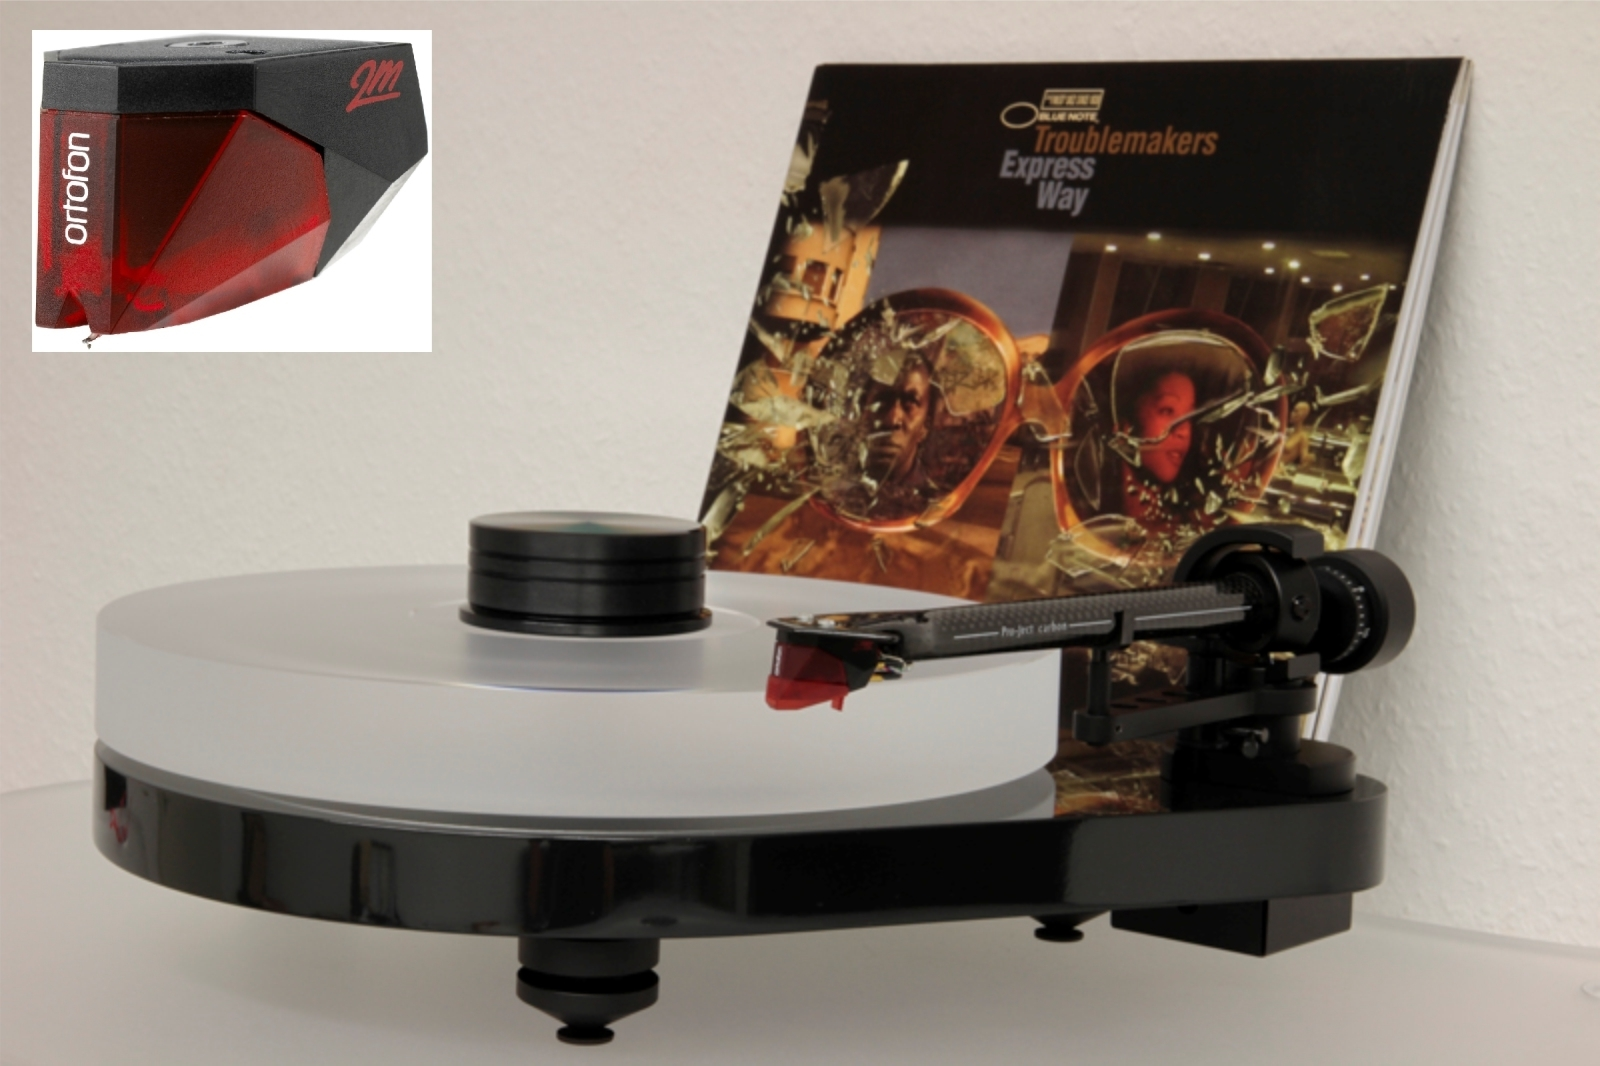 PRO-JECT RPM 5.1 Plattenspieler DELTA DEVICE / Ortofon Red / Edition Upgrade